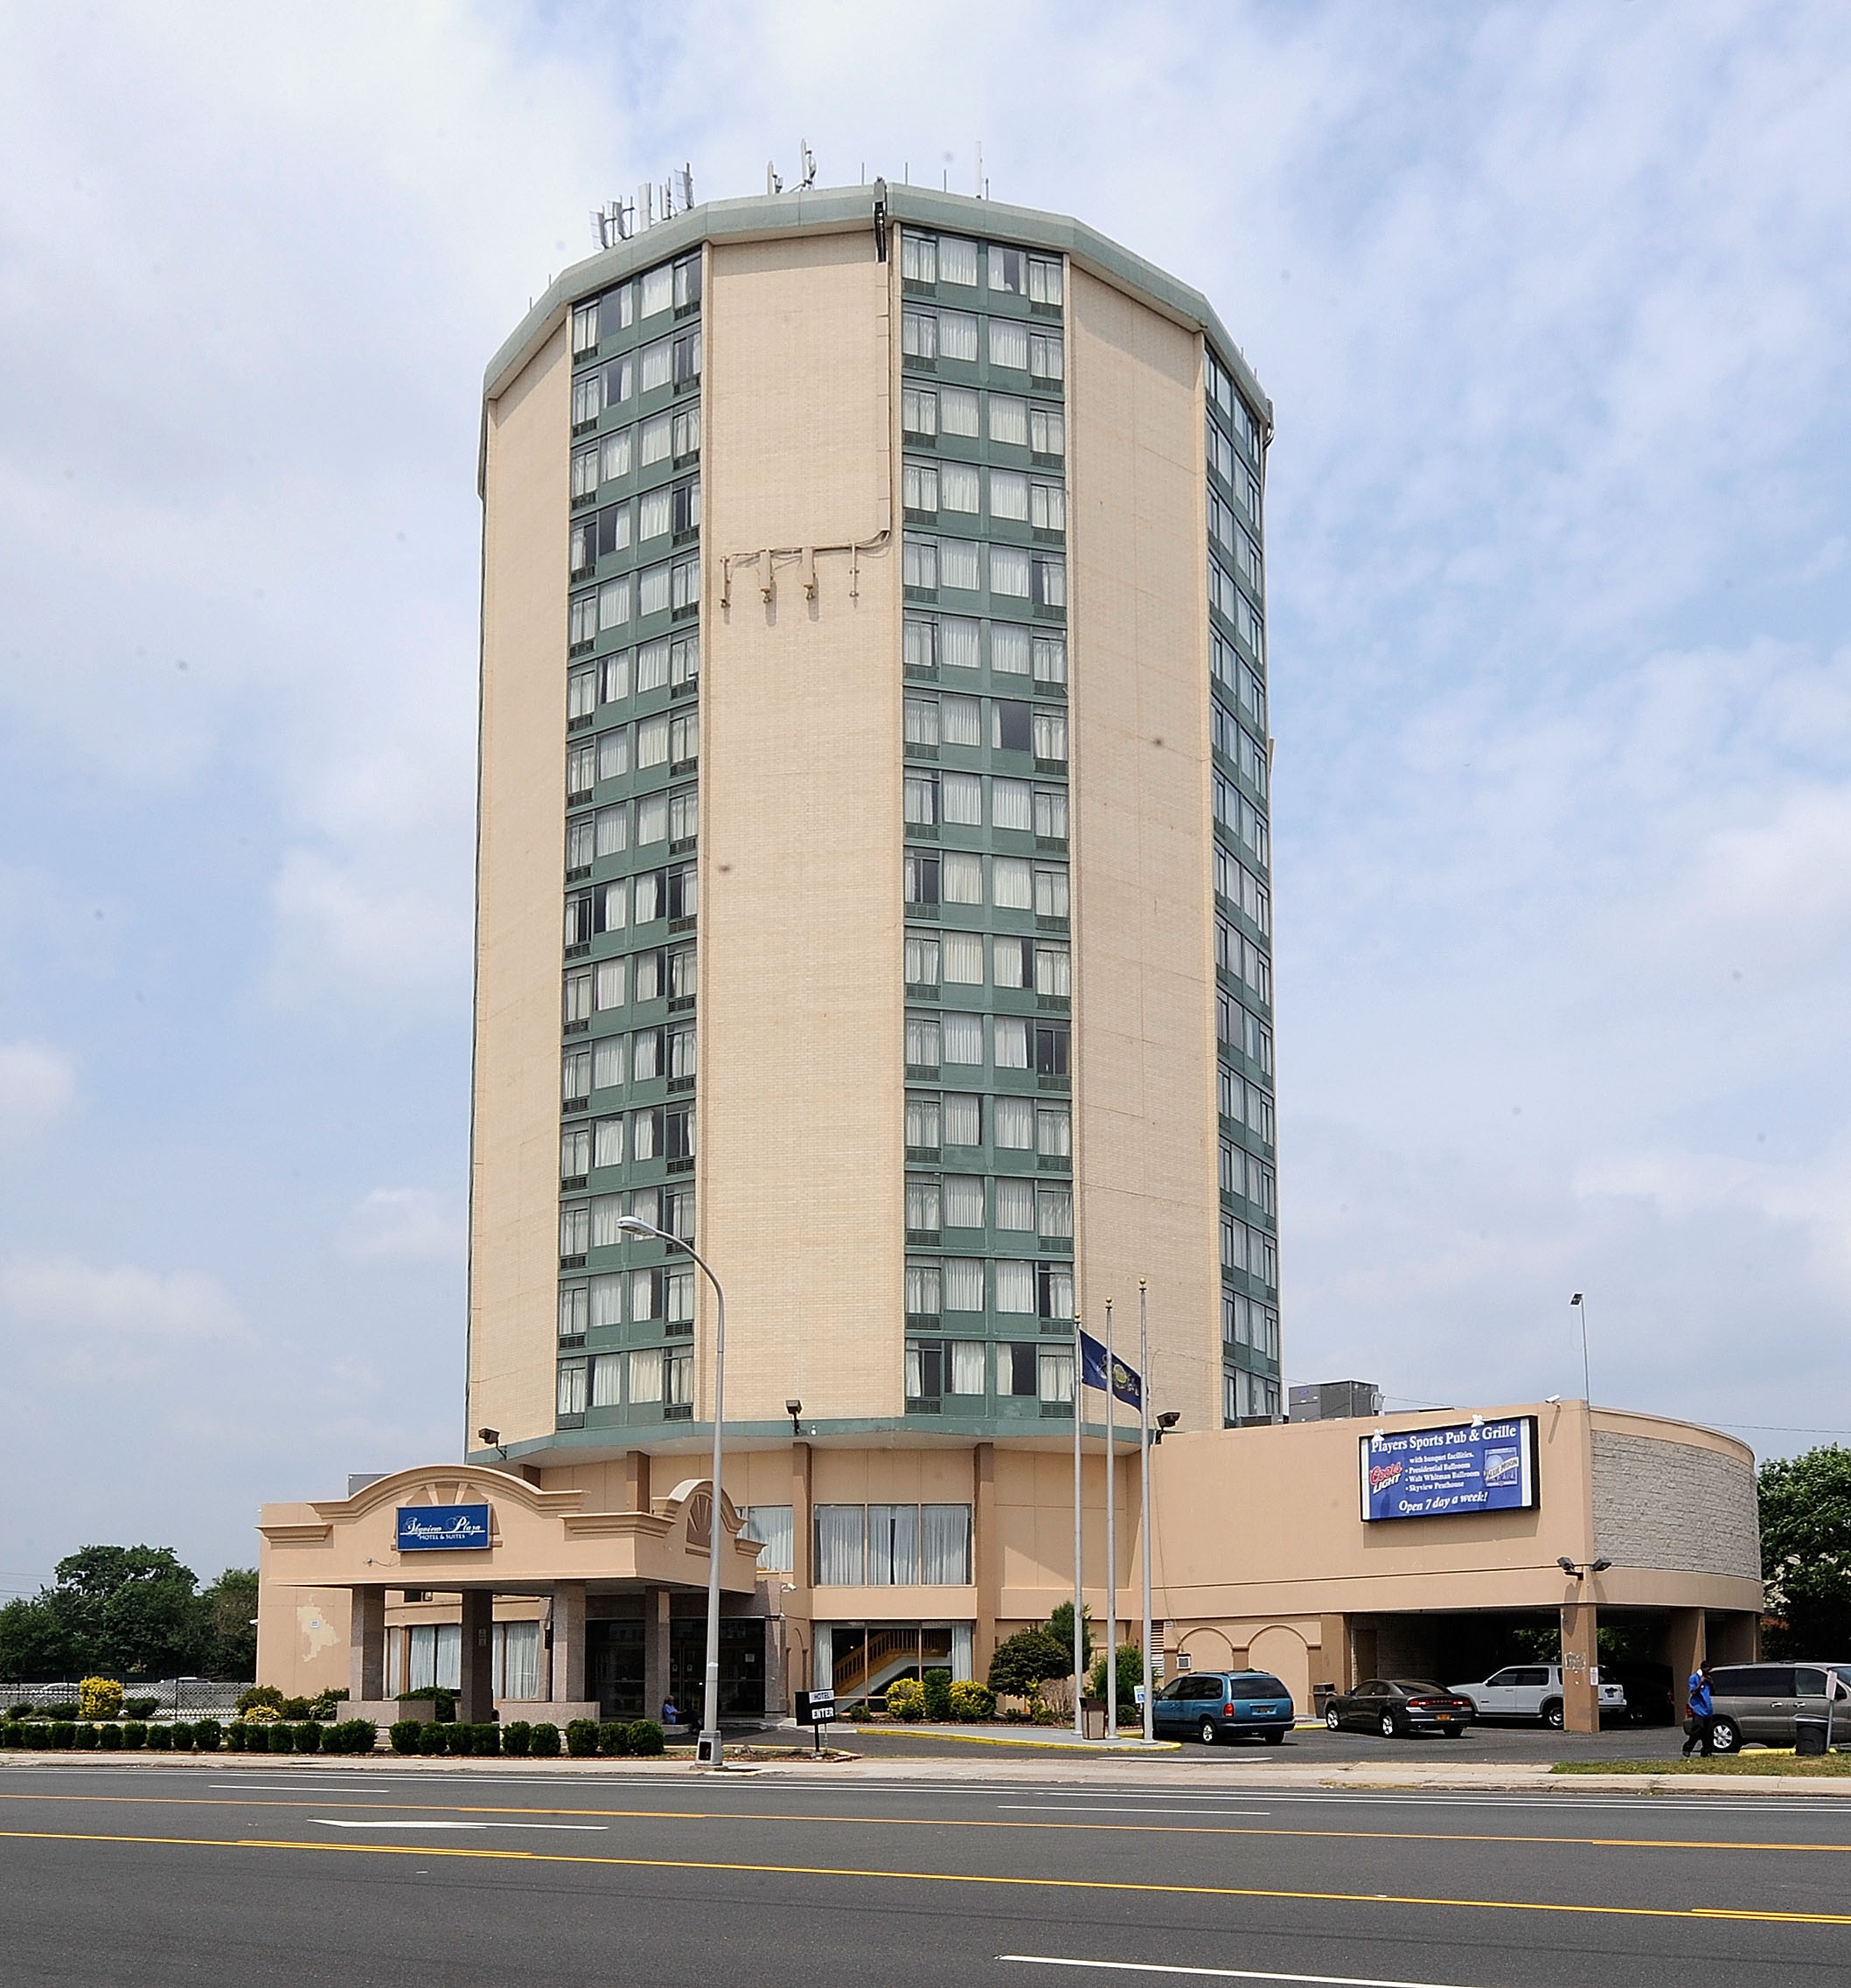 The Skyview Plaza Hotel in South Philadelphia is one of the city's largest tax delinquents. (Clem Murray / Inquirer)